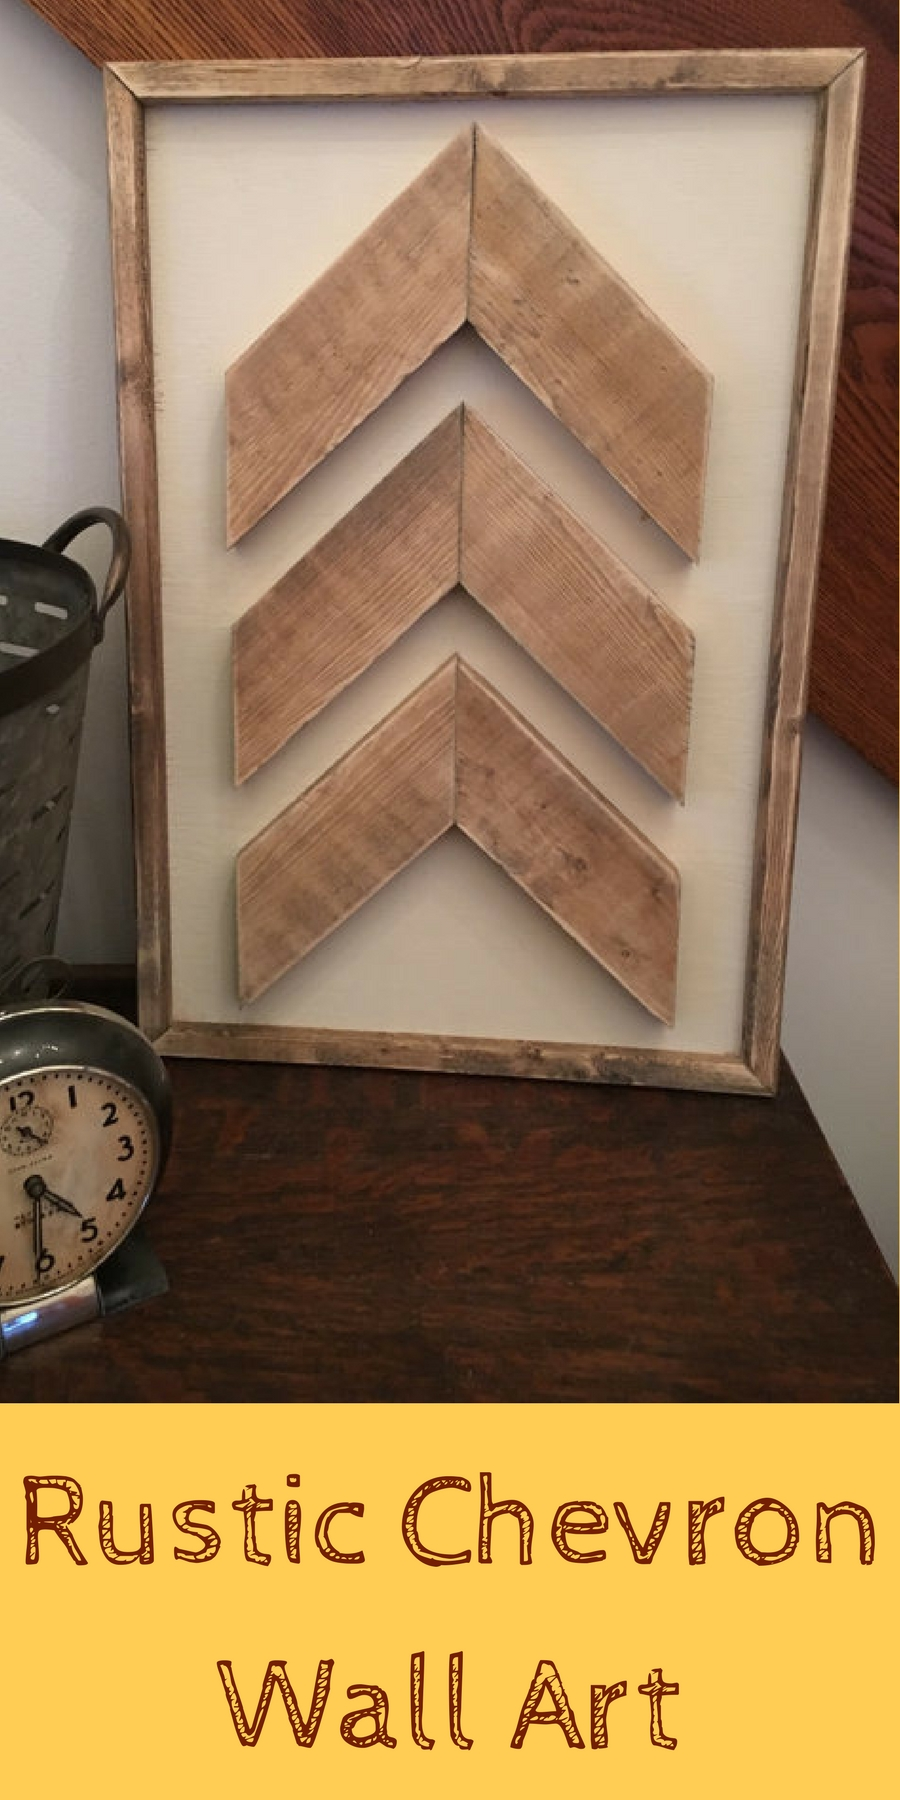 Chevron Wall Art, Wooden Wall Art, Rustic Wall Decor, Wooden within Chevron Wall Art (Image 9 of 20)